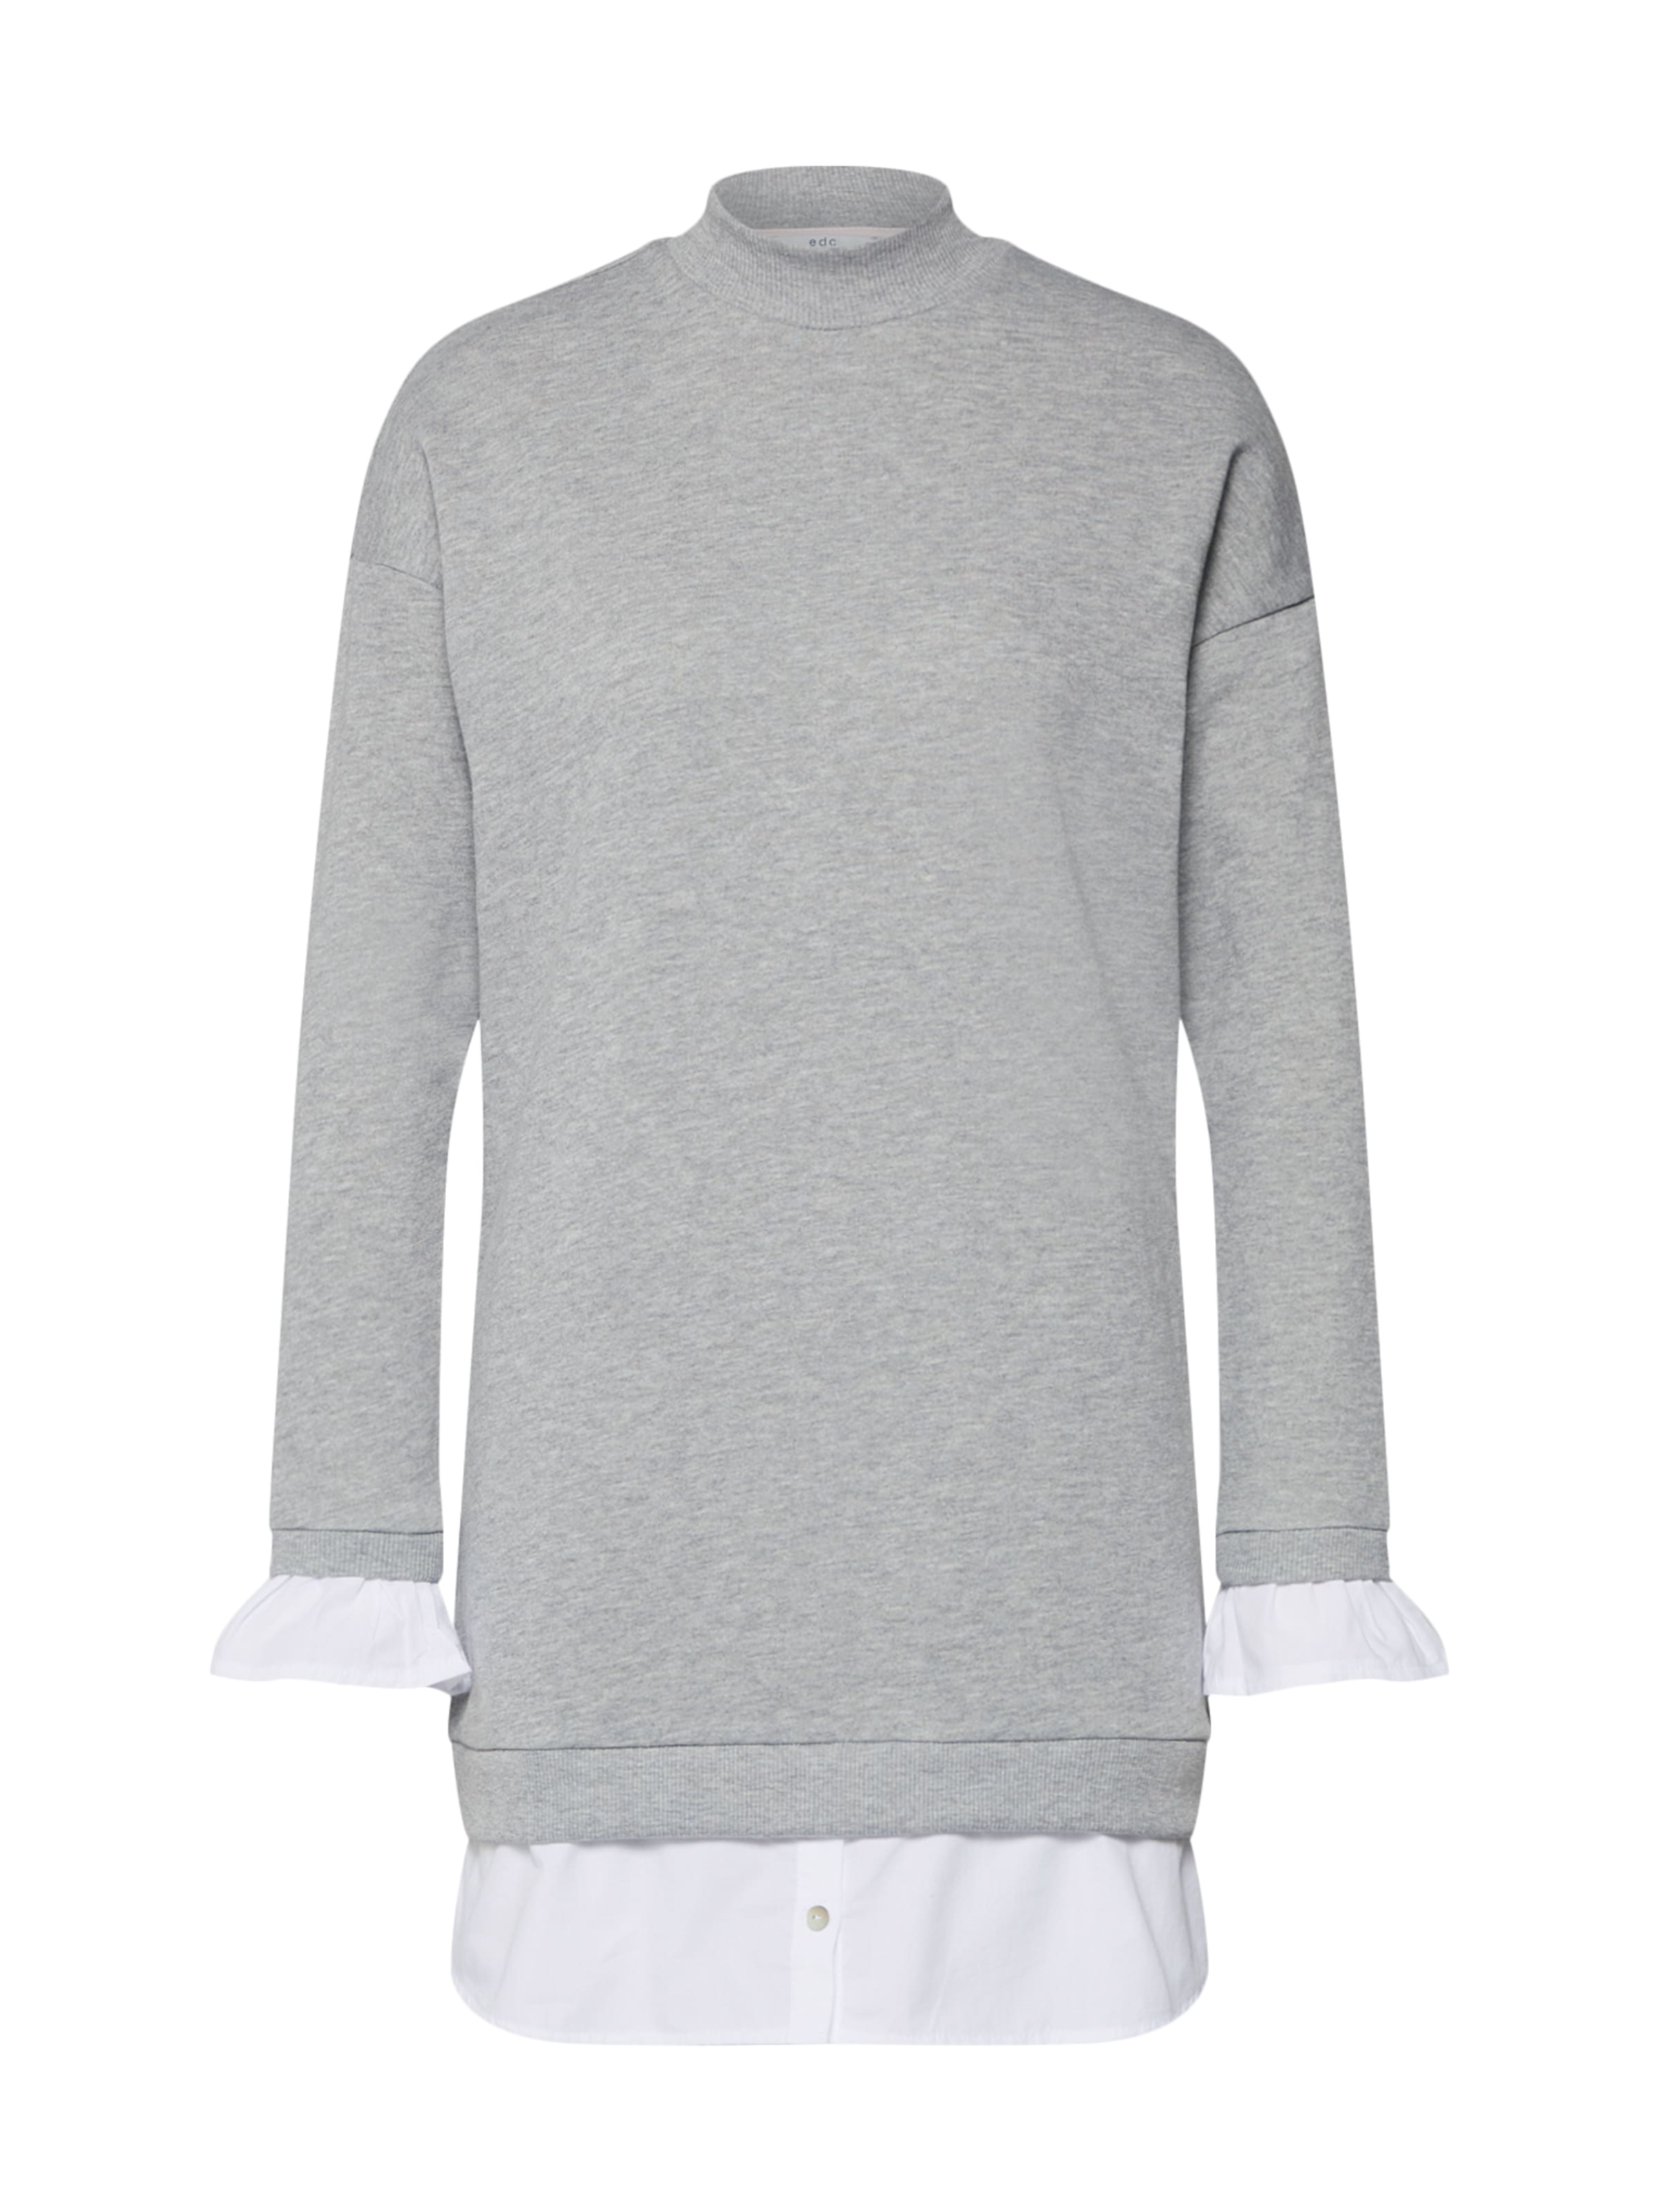 Dresses Sweatdress Edc By GrisBlanc En Esprit 'eos Knitted' Robe hQdtCrs